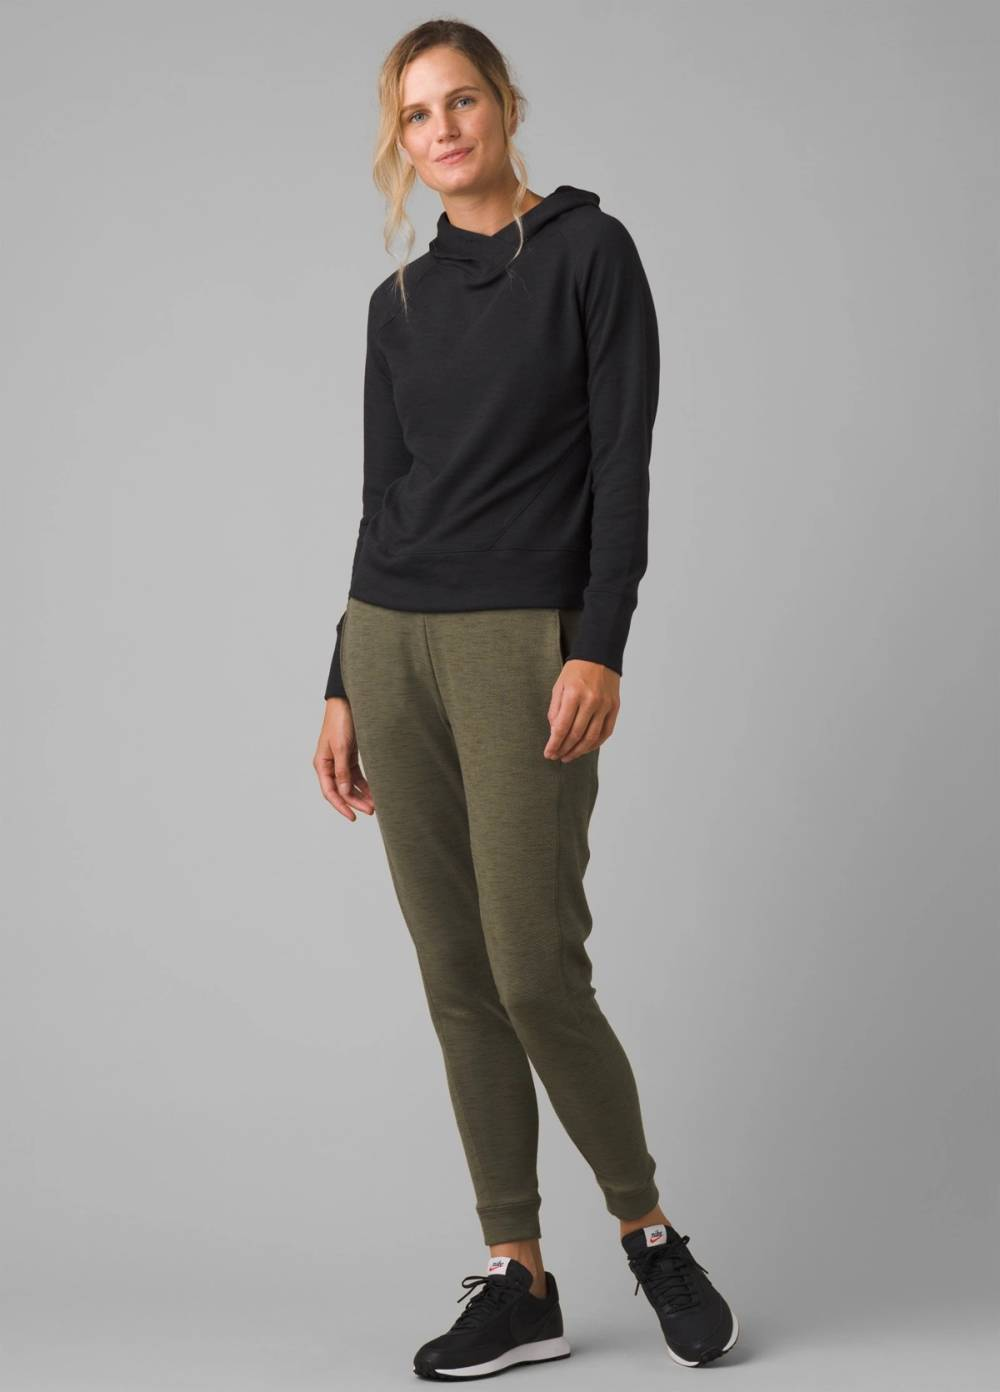 prana affordable sustainable hoodies